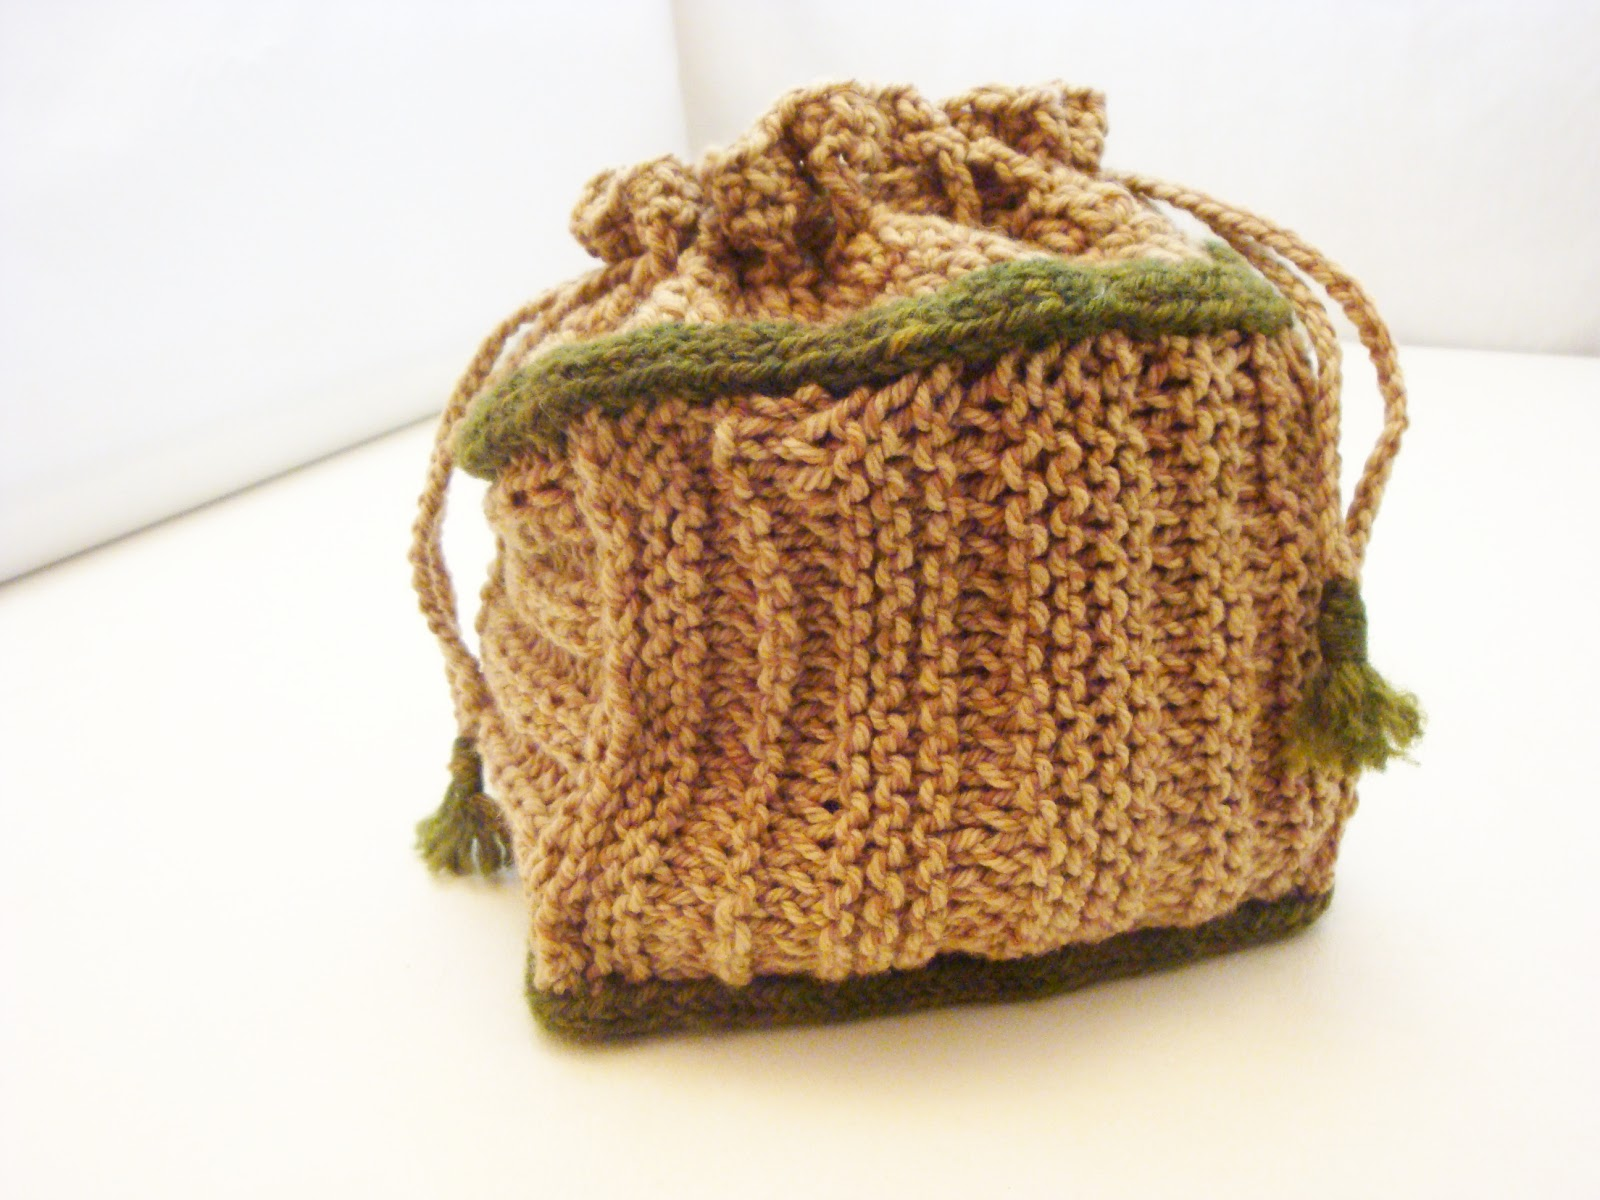 Crochet Project Bag : ... Project Bag made with naturally-dyed yarns includes knitting, crochet